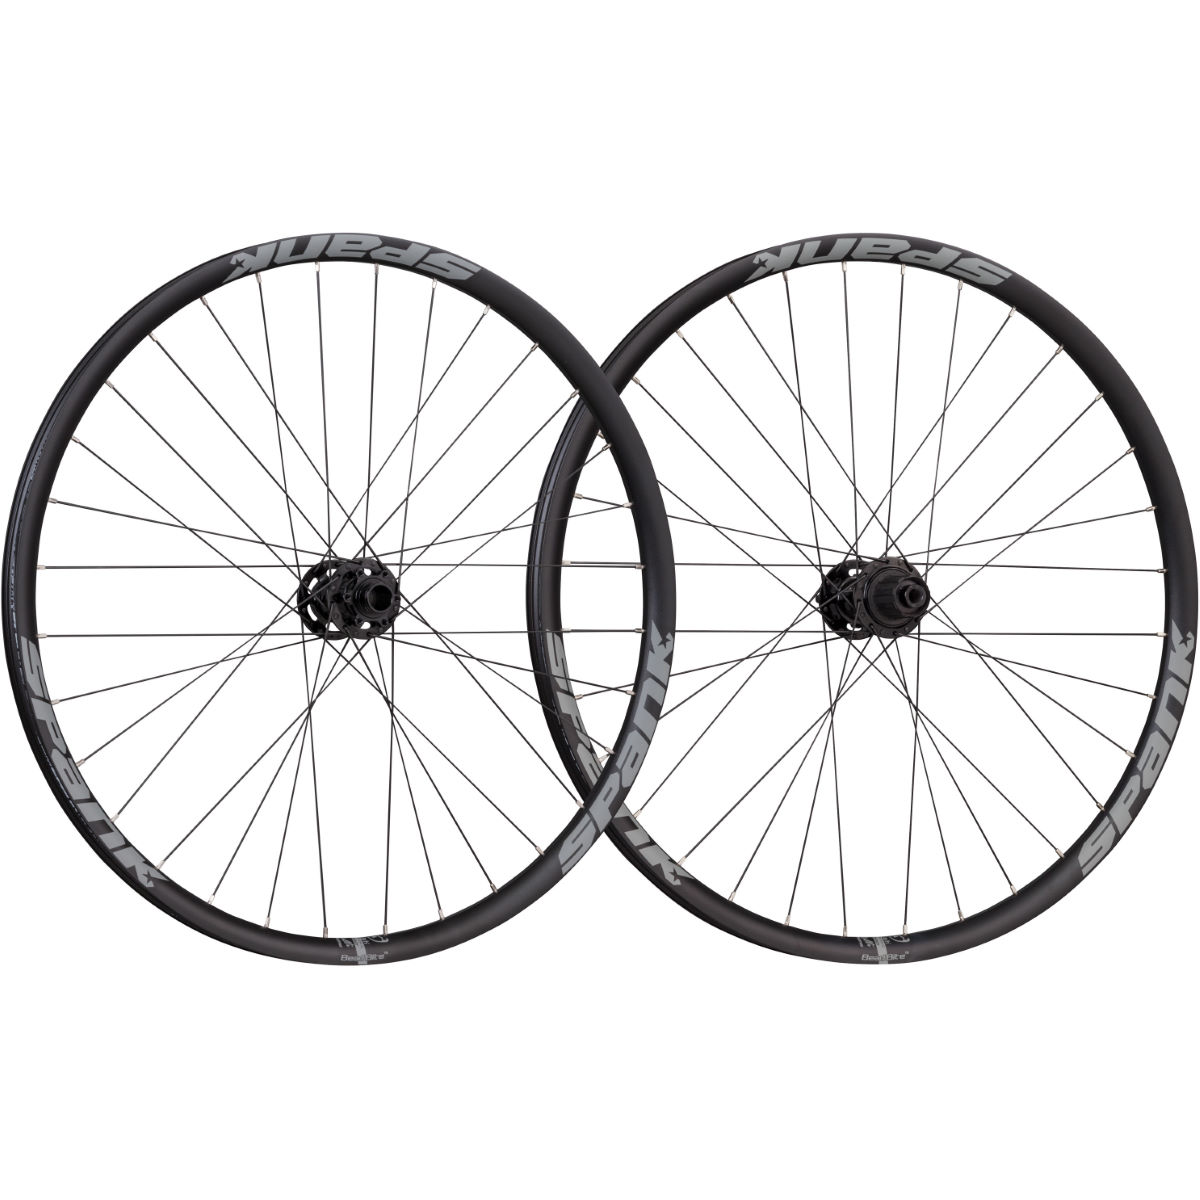 Paire de roues VTT Spank Spike Race 33 Bead Bite - 27.5'' XD Freehub